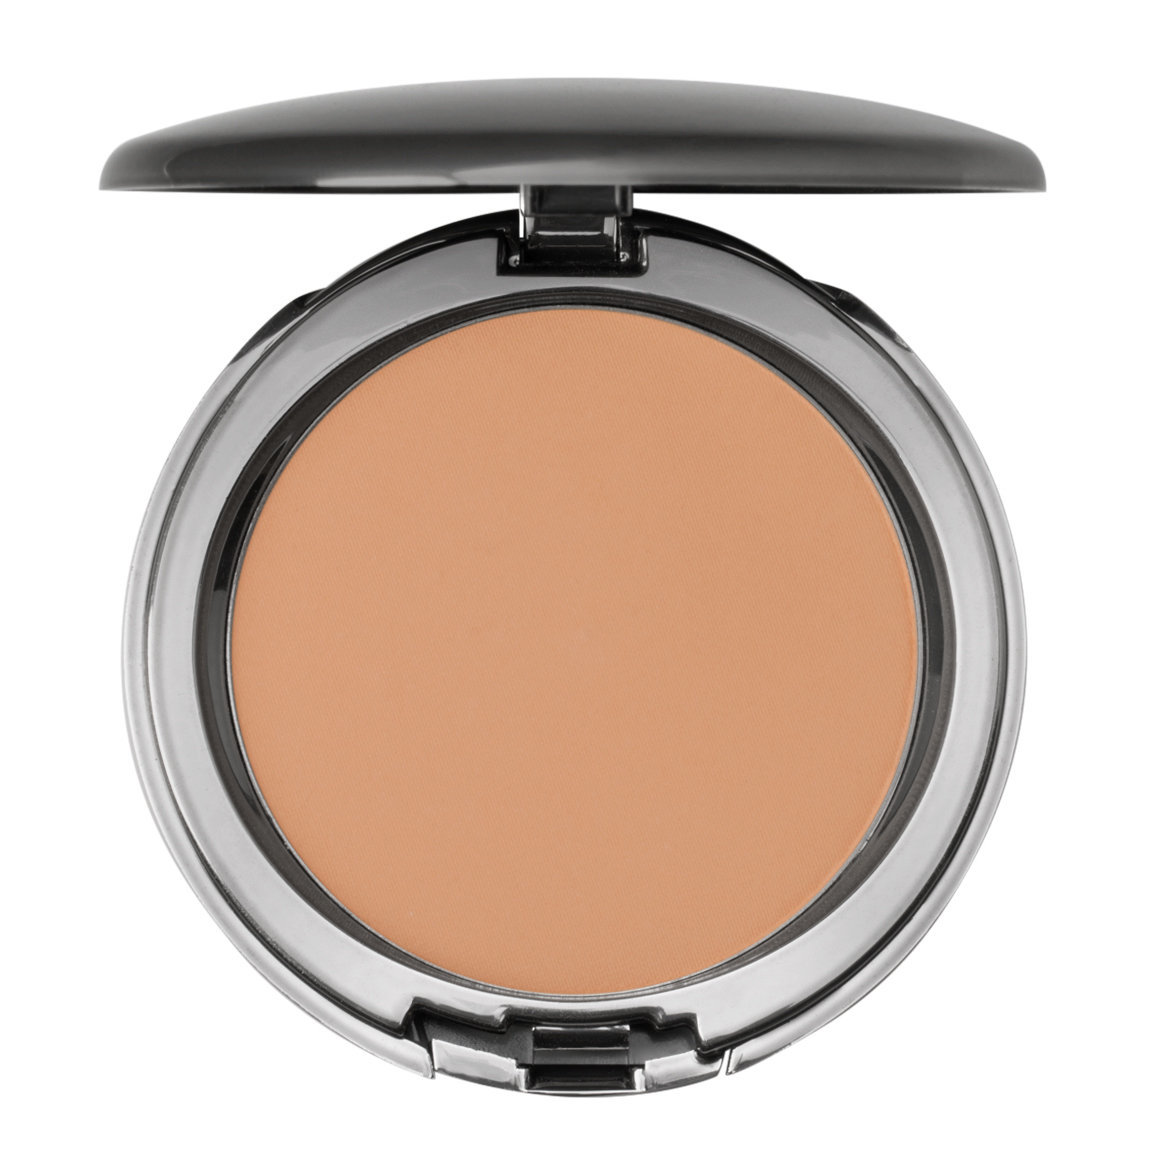 COVER | FX Perfect Pressed Setting Powder Medium alternative view 1 - product swatch.